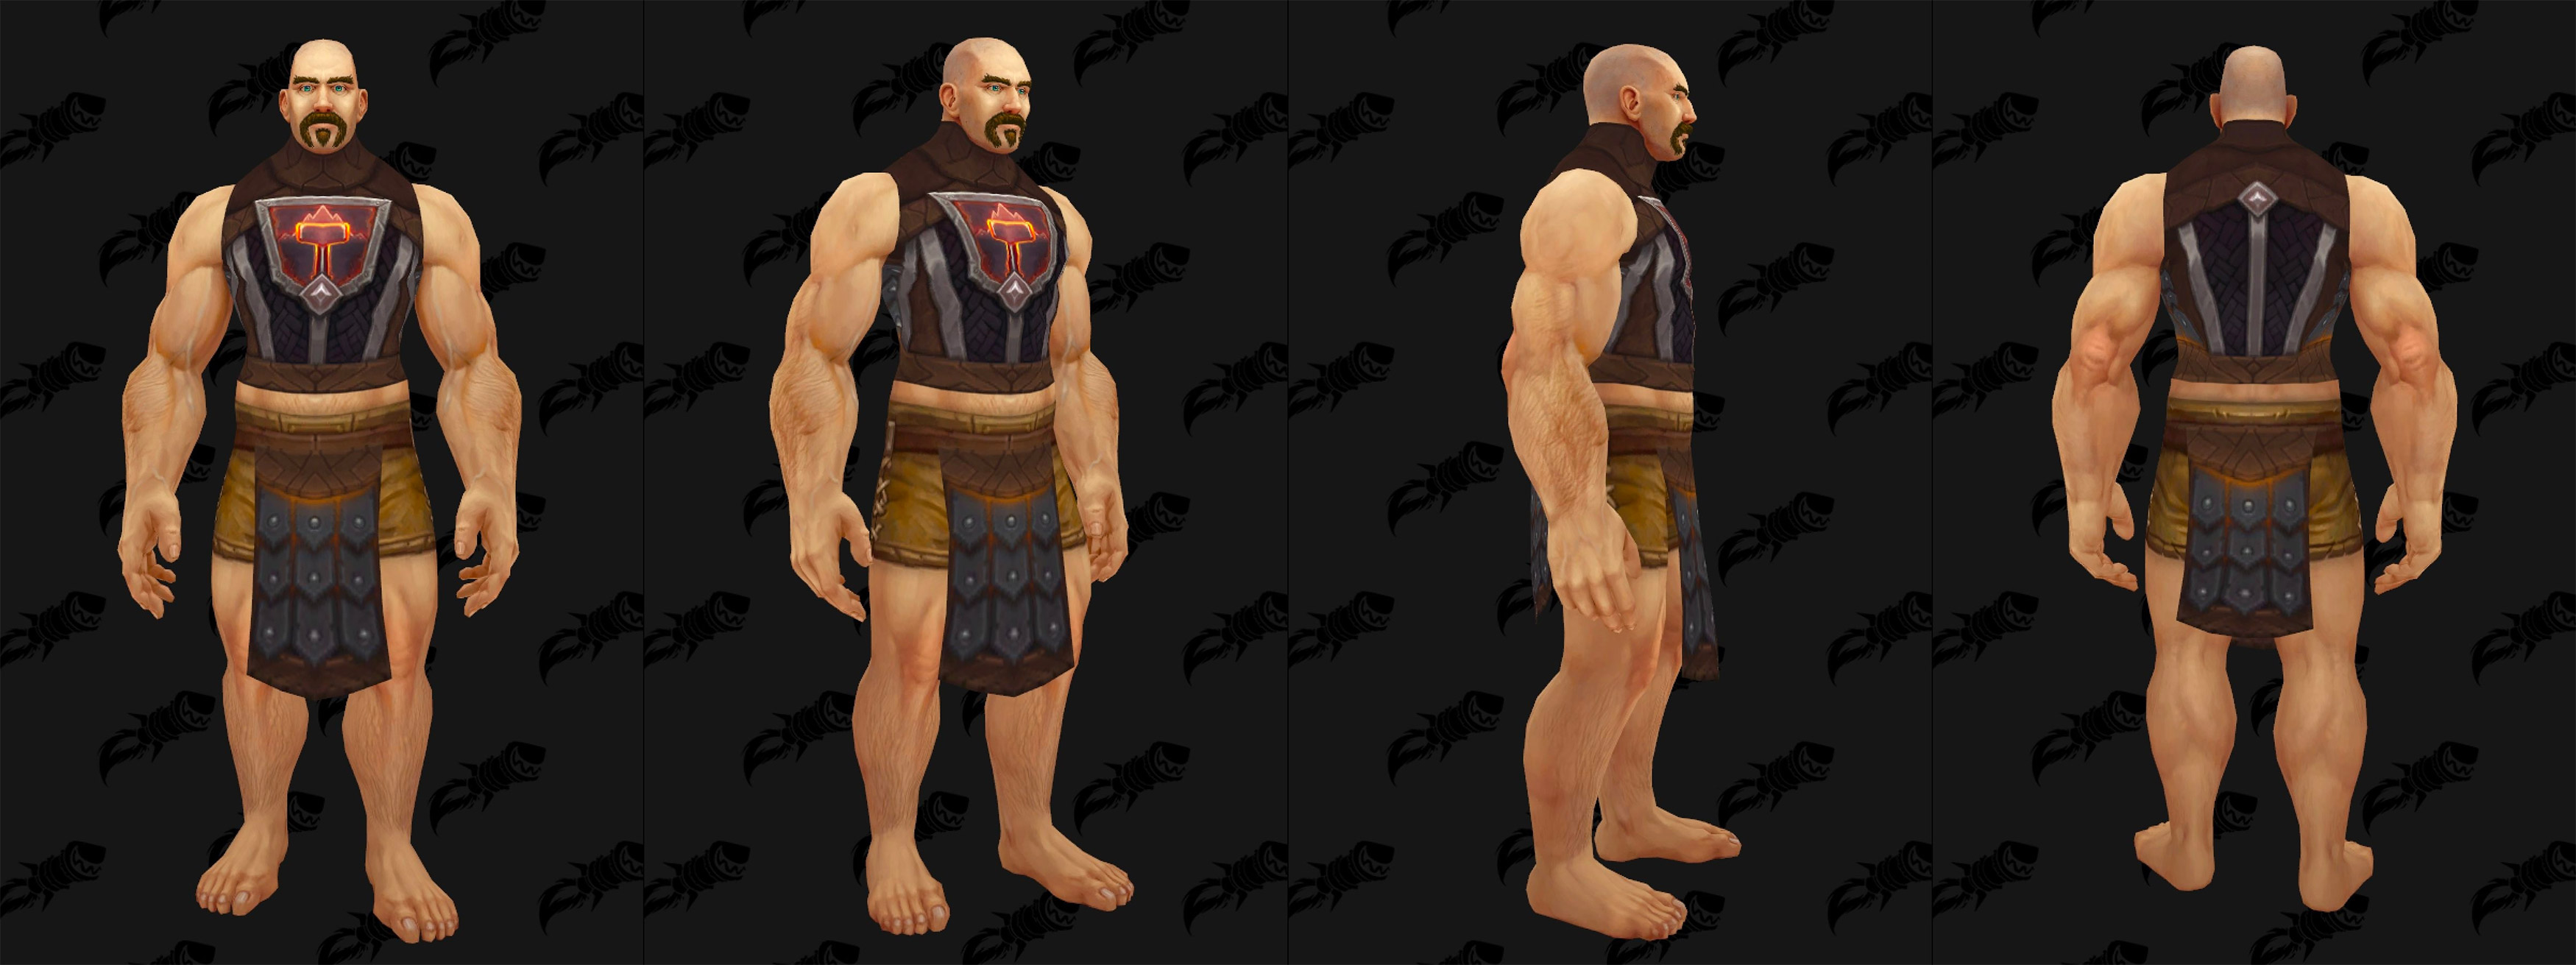 Tabard des Nains sombrefer dans Battle for Azeroth